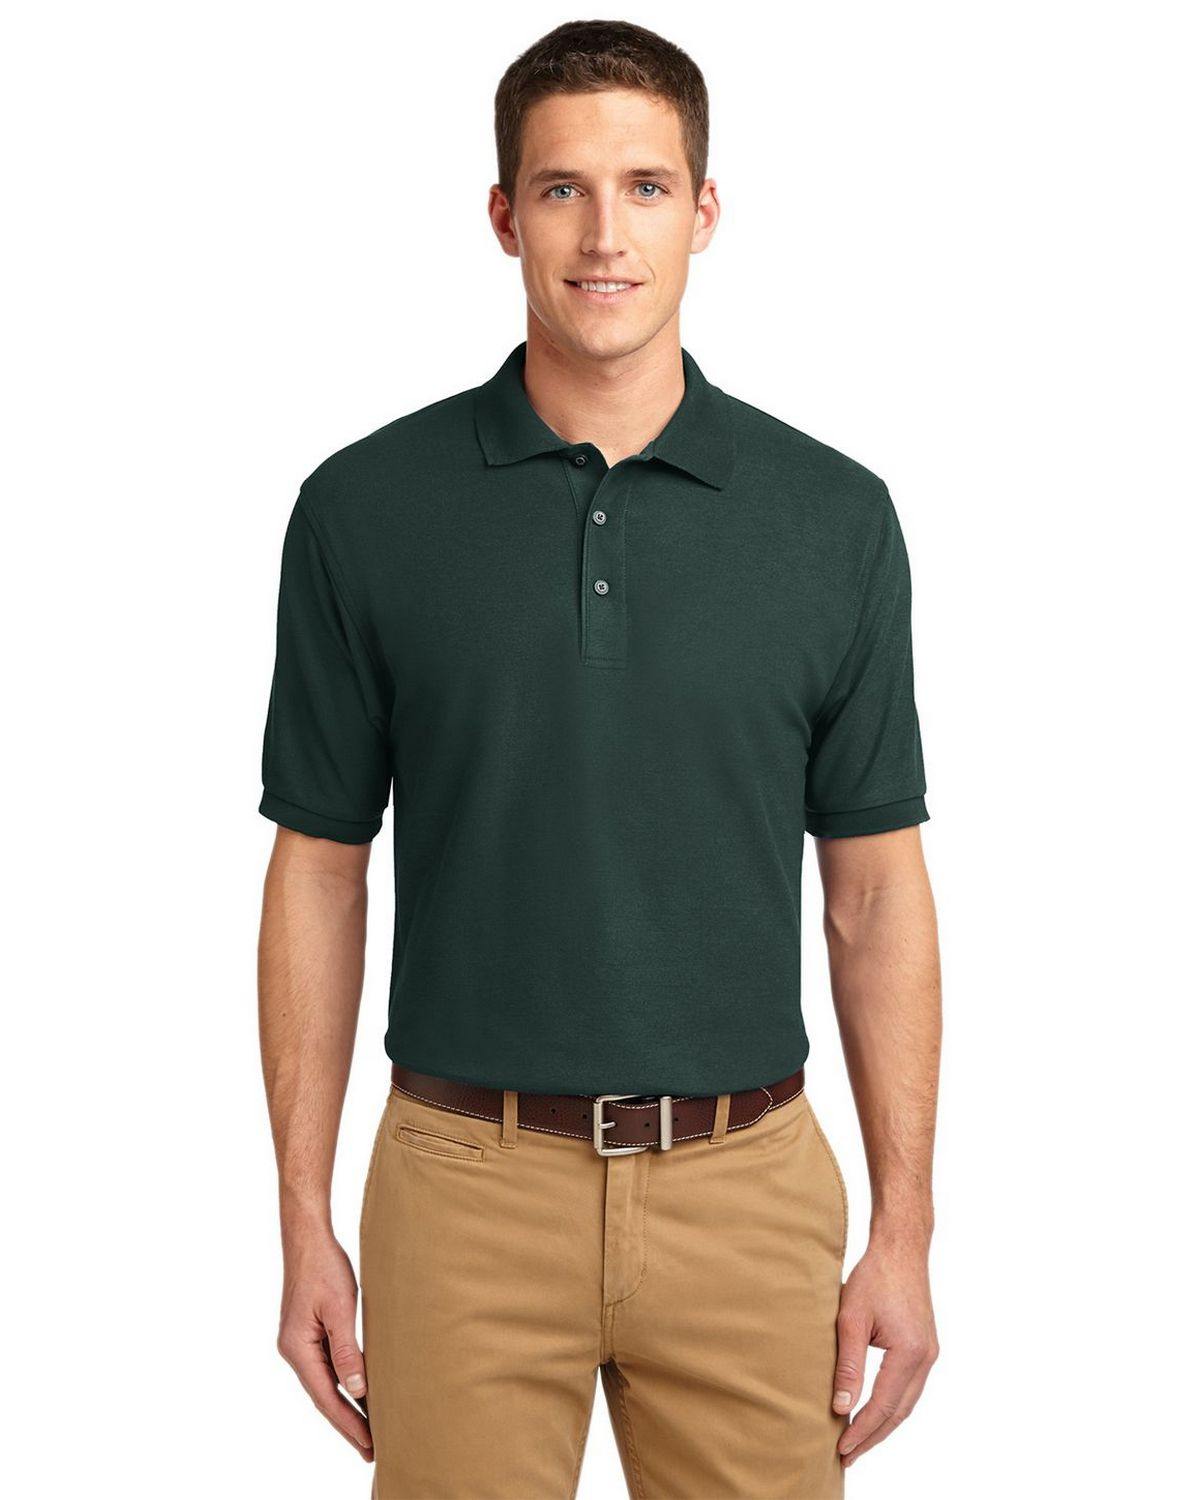 Port Authority K500 Men's Silk Touch Polo - Dark Green - XS #silk